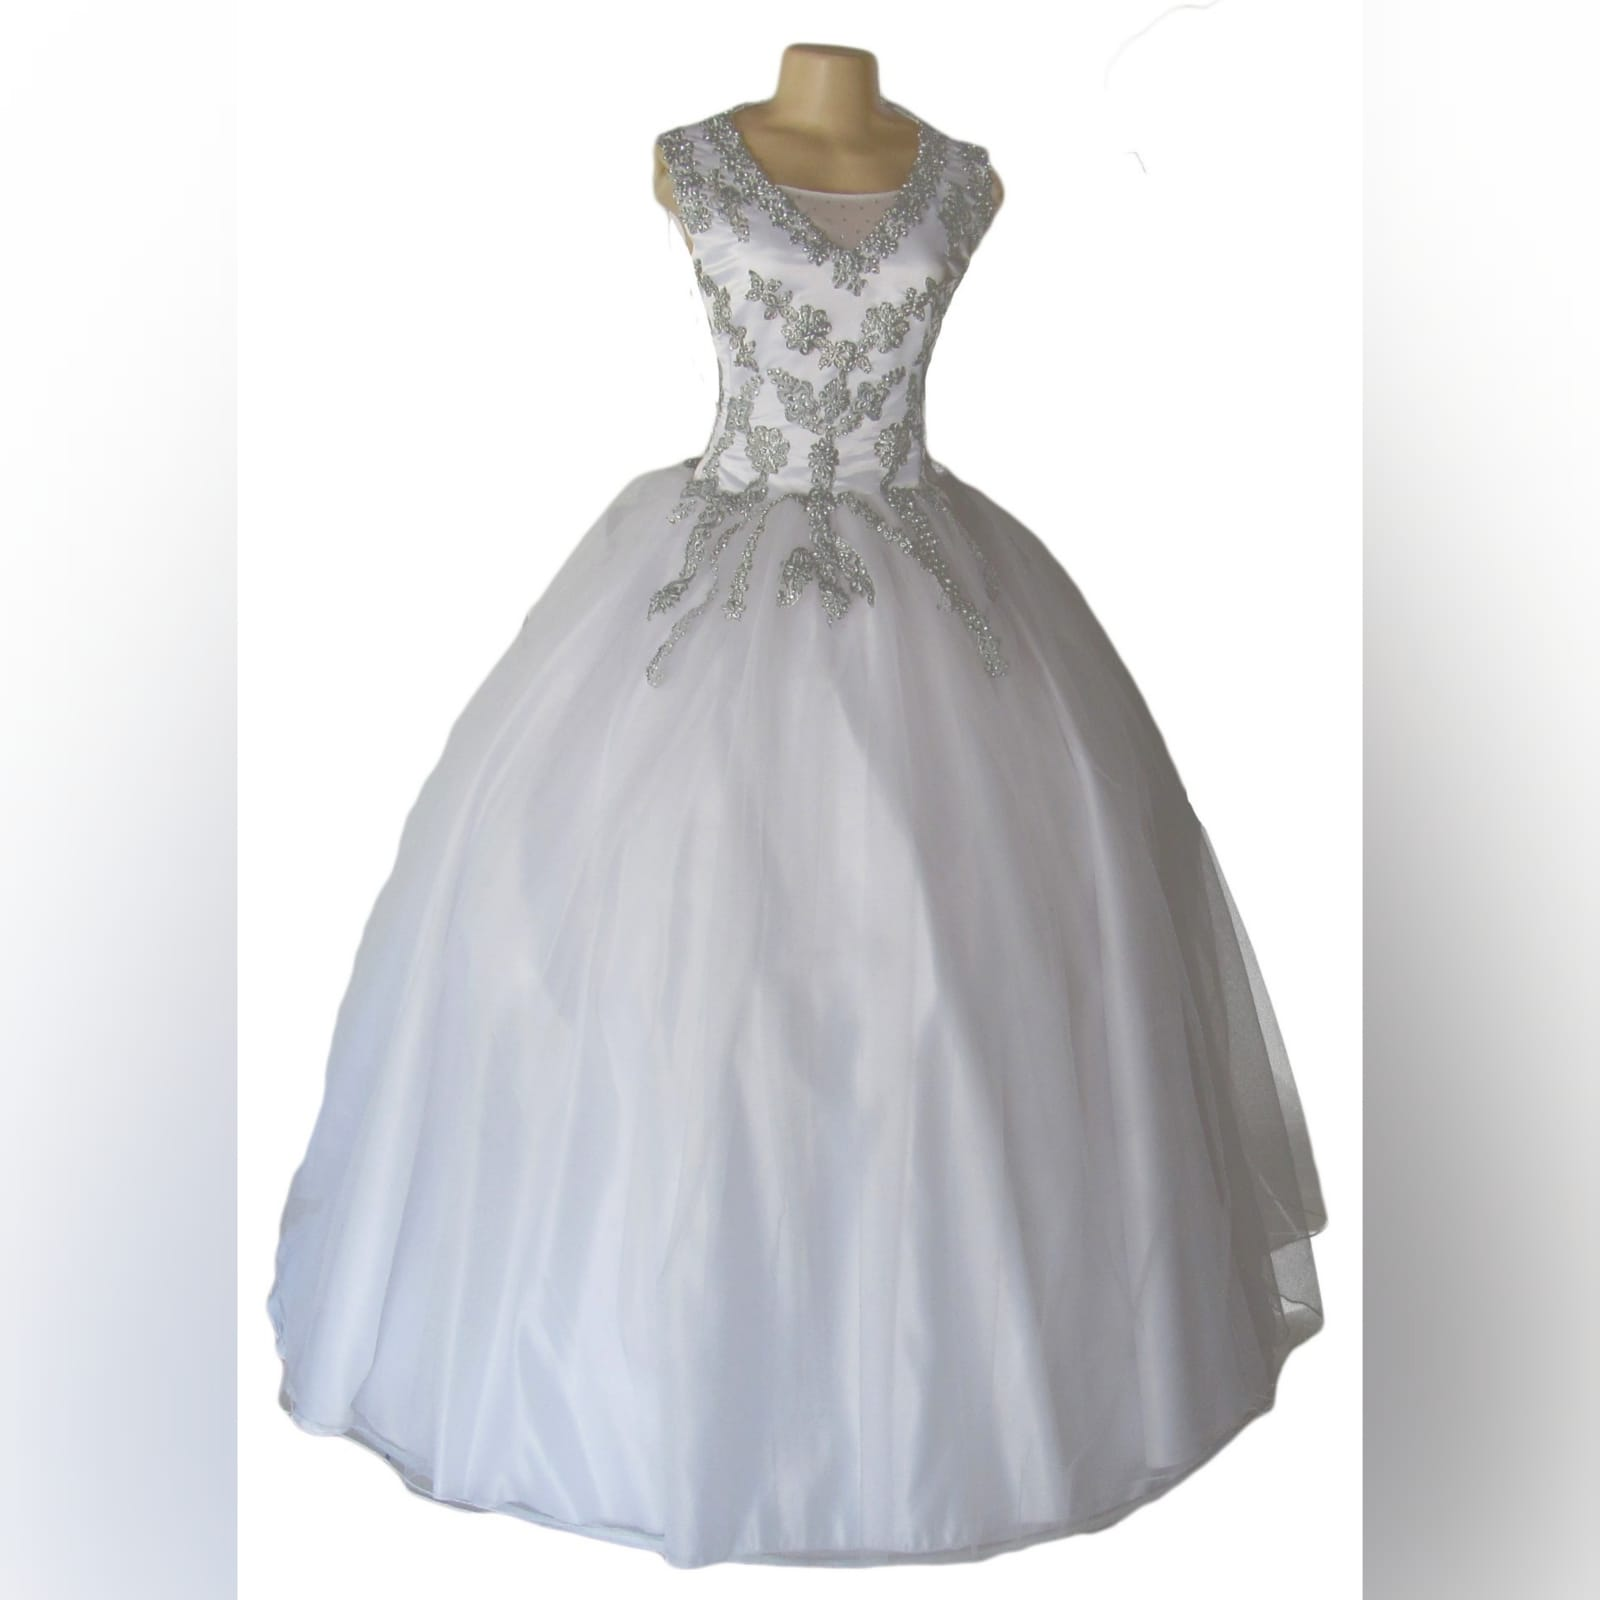 White & silver ball gown wedding dress 7 white & silver ballgown wedding dress. Bodice detailed with silver detail and beads. Falling to the ballgown. Back detailed with silver covered buttons.